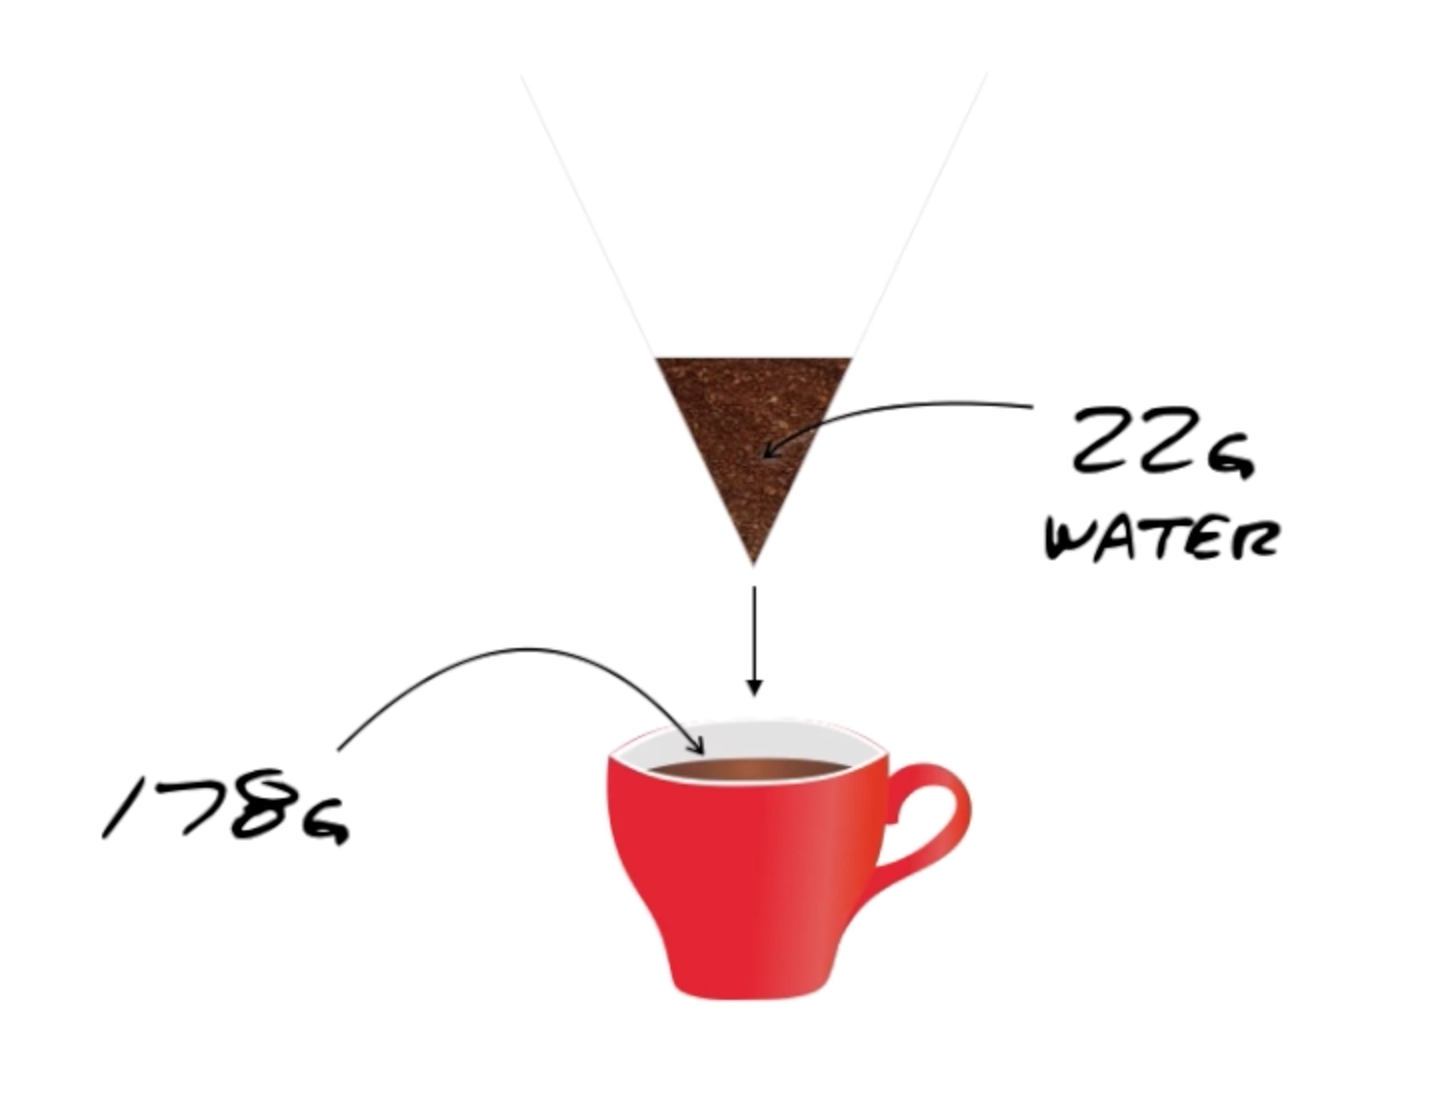 Understanding coffee ratios